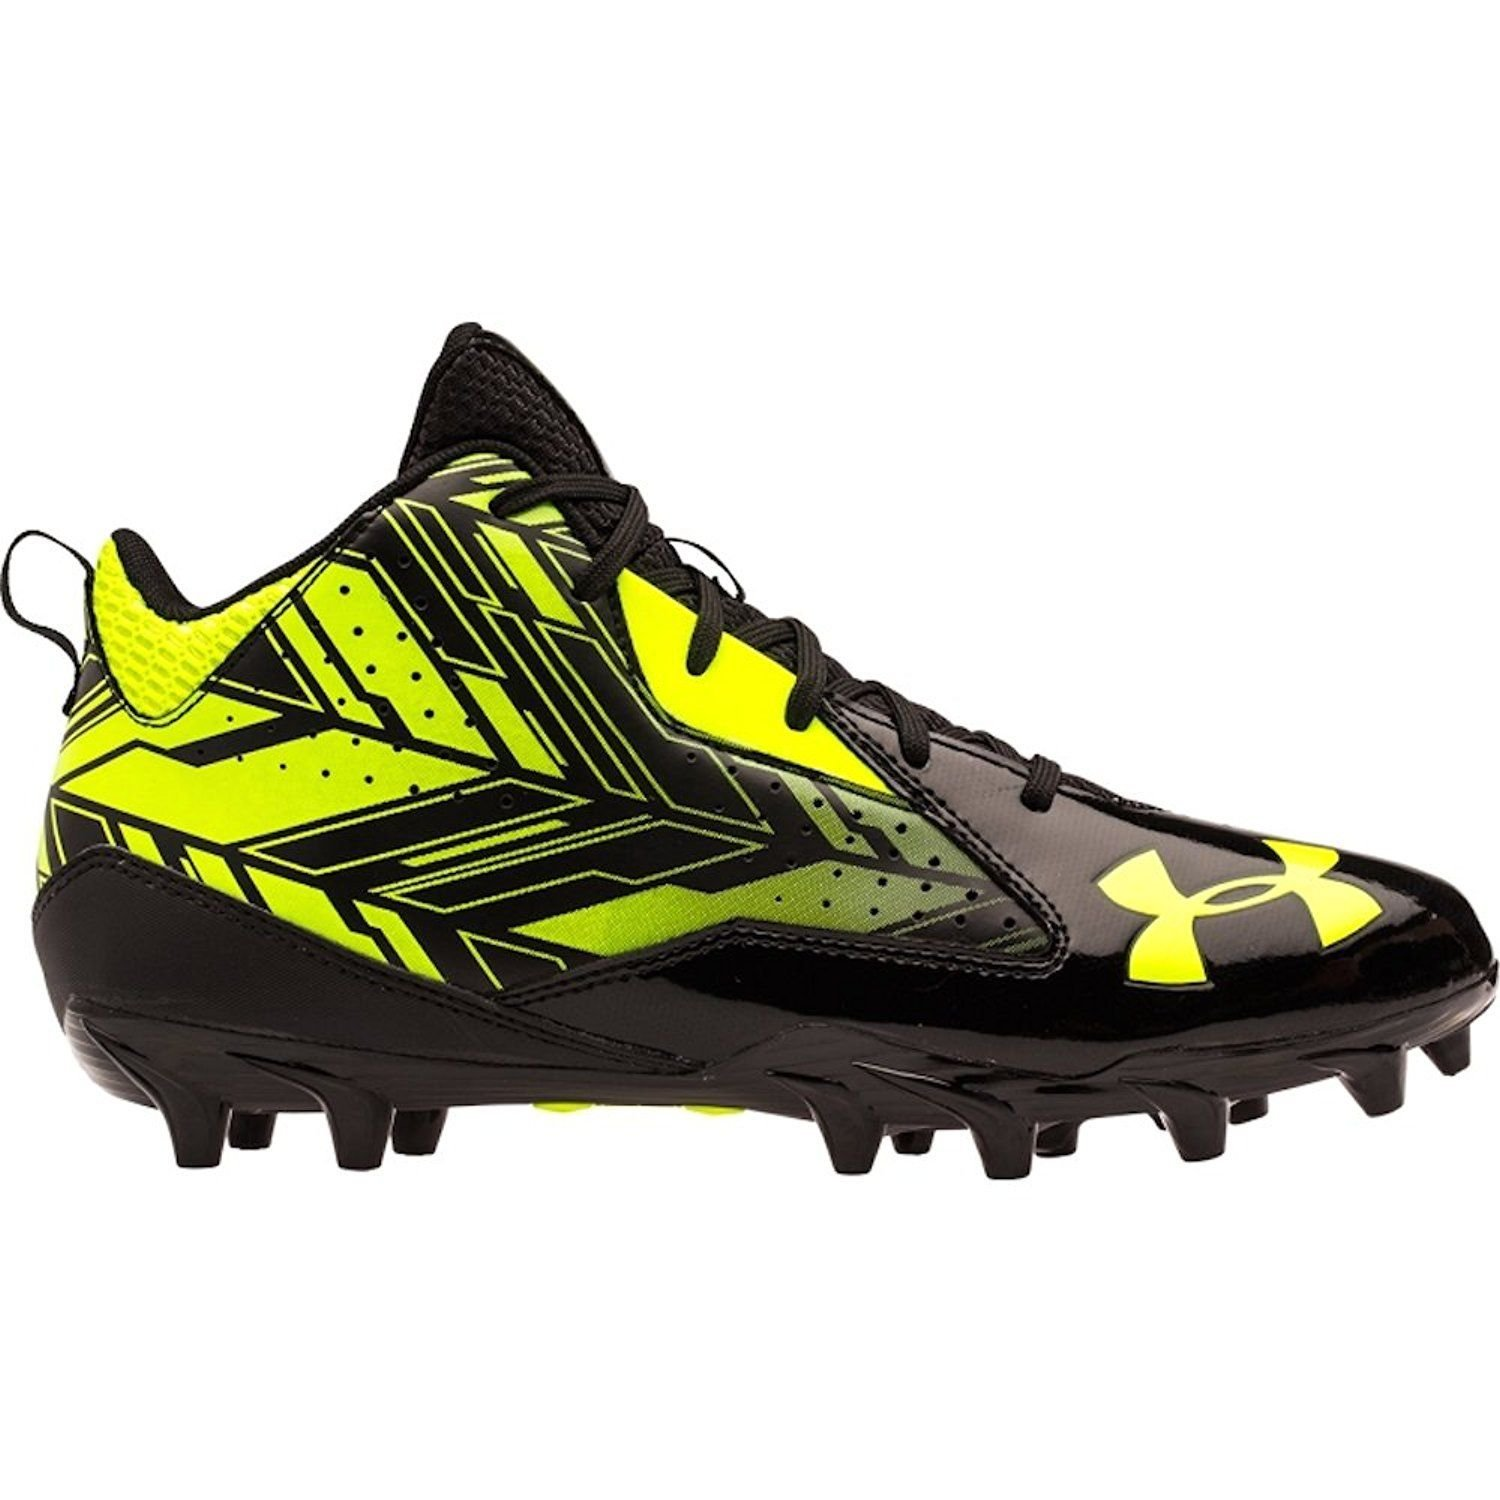 Under Armour Ripshot Mid MC Men's Lacrosse Cleats (7.5, Black) by Under Armour